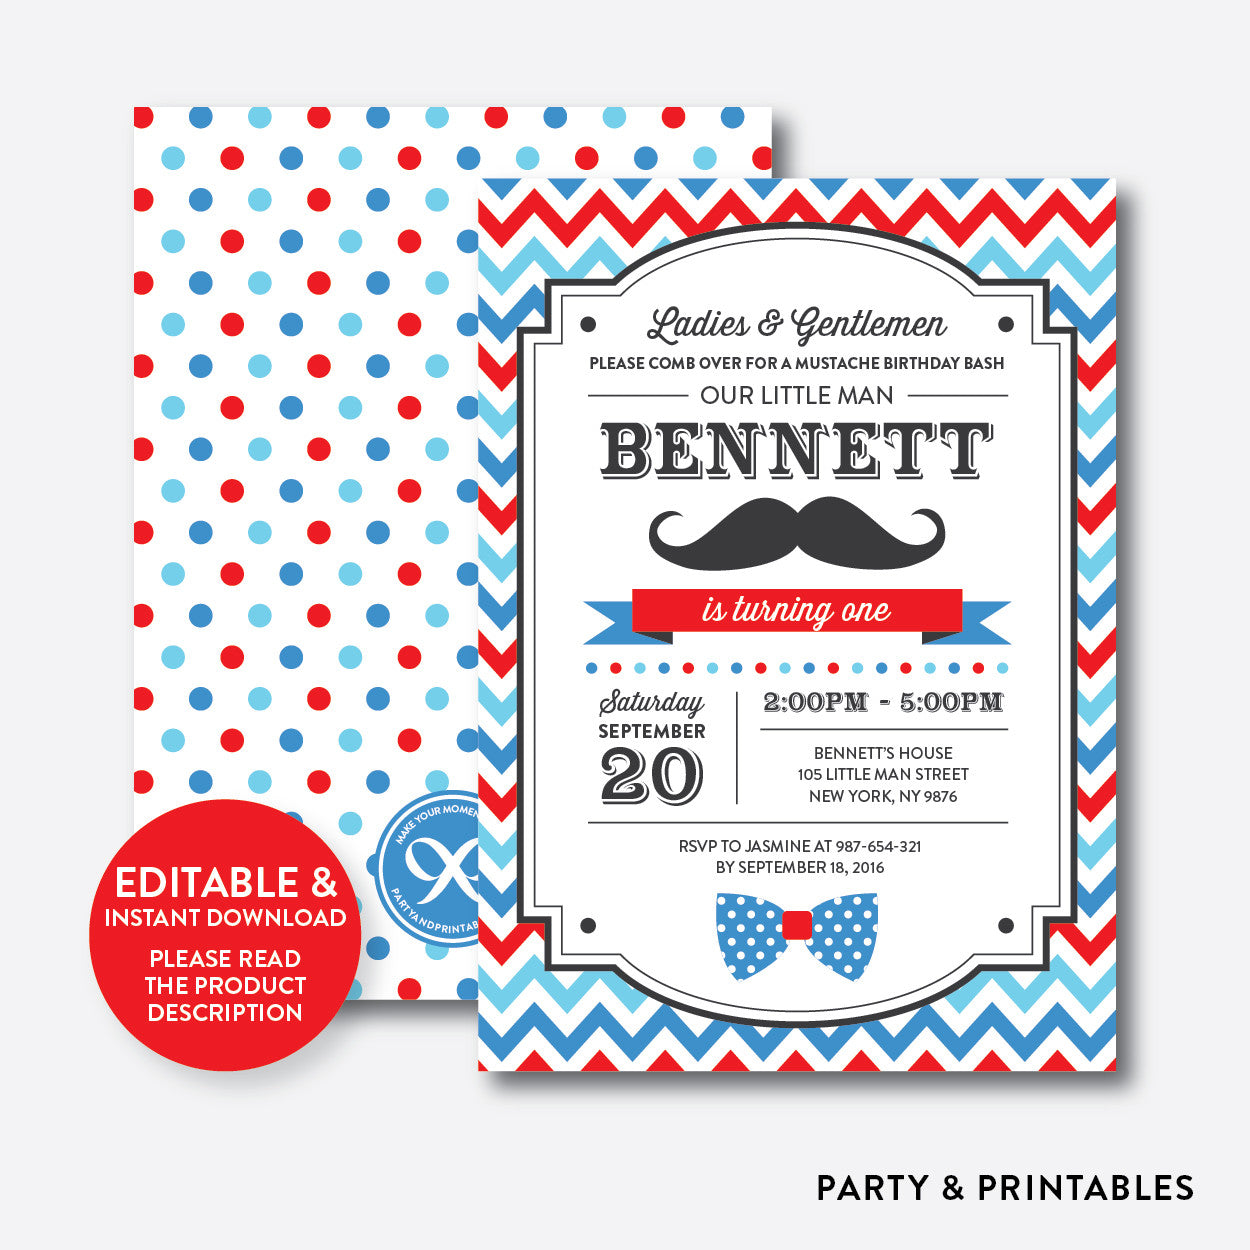 Mustache Kids Birthday Invitation / Editable / Instant Download (SKB.24), invitation - Party and Printables